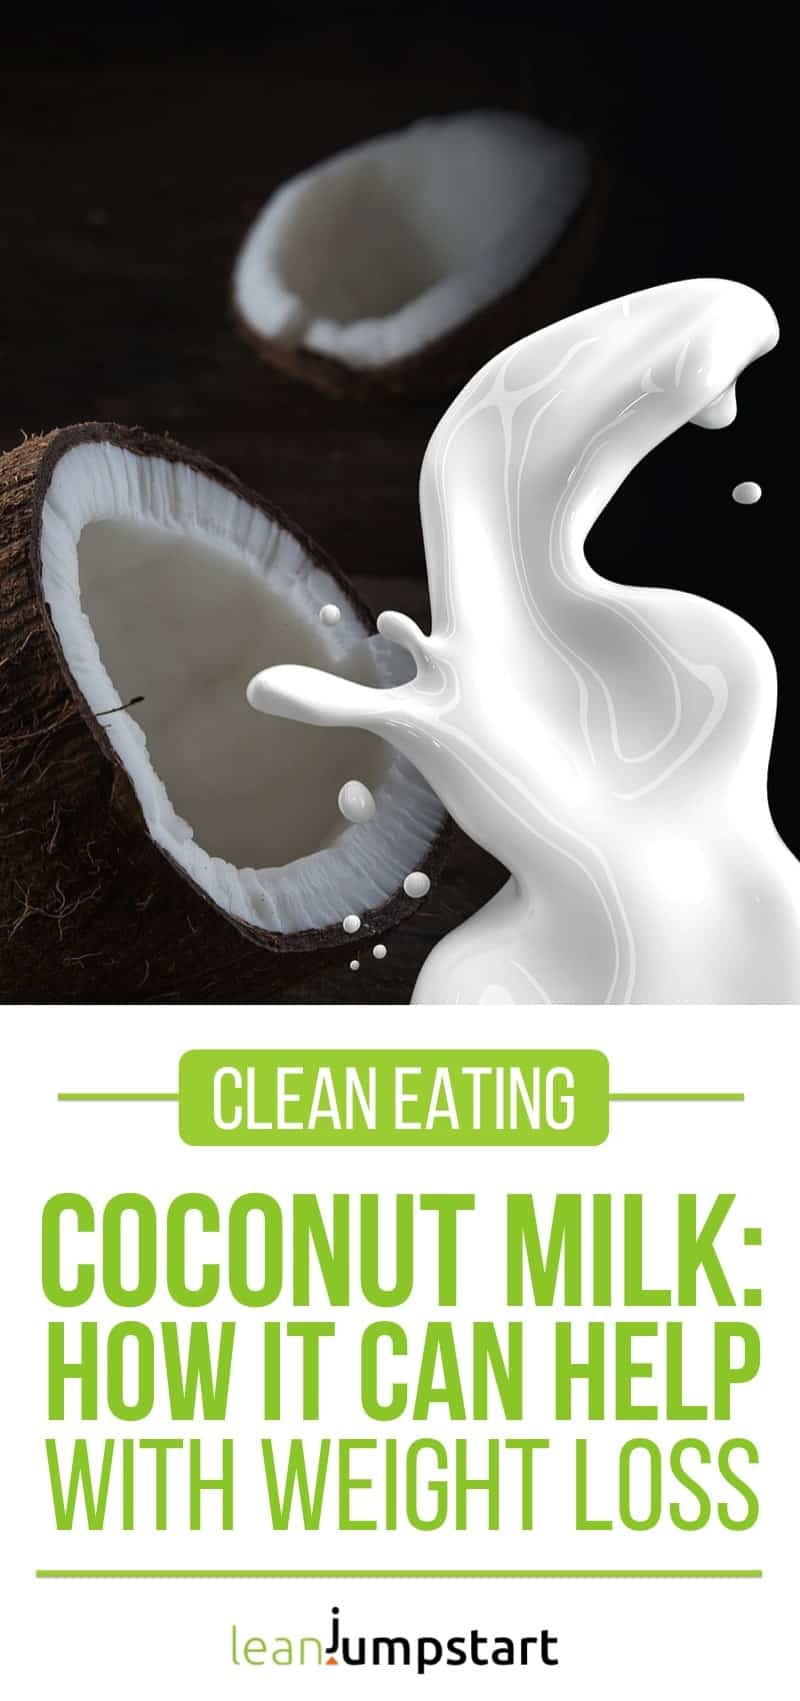 coconut milk: how it can help with weight loss